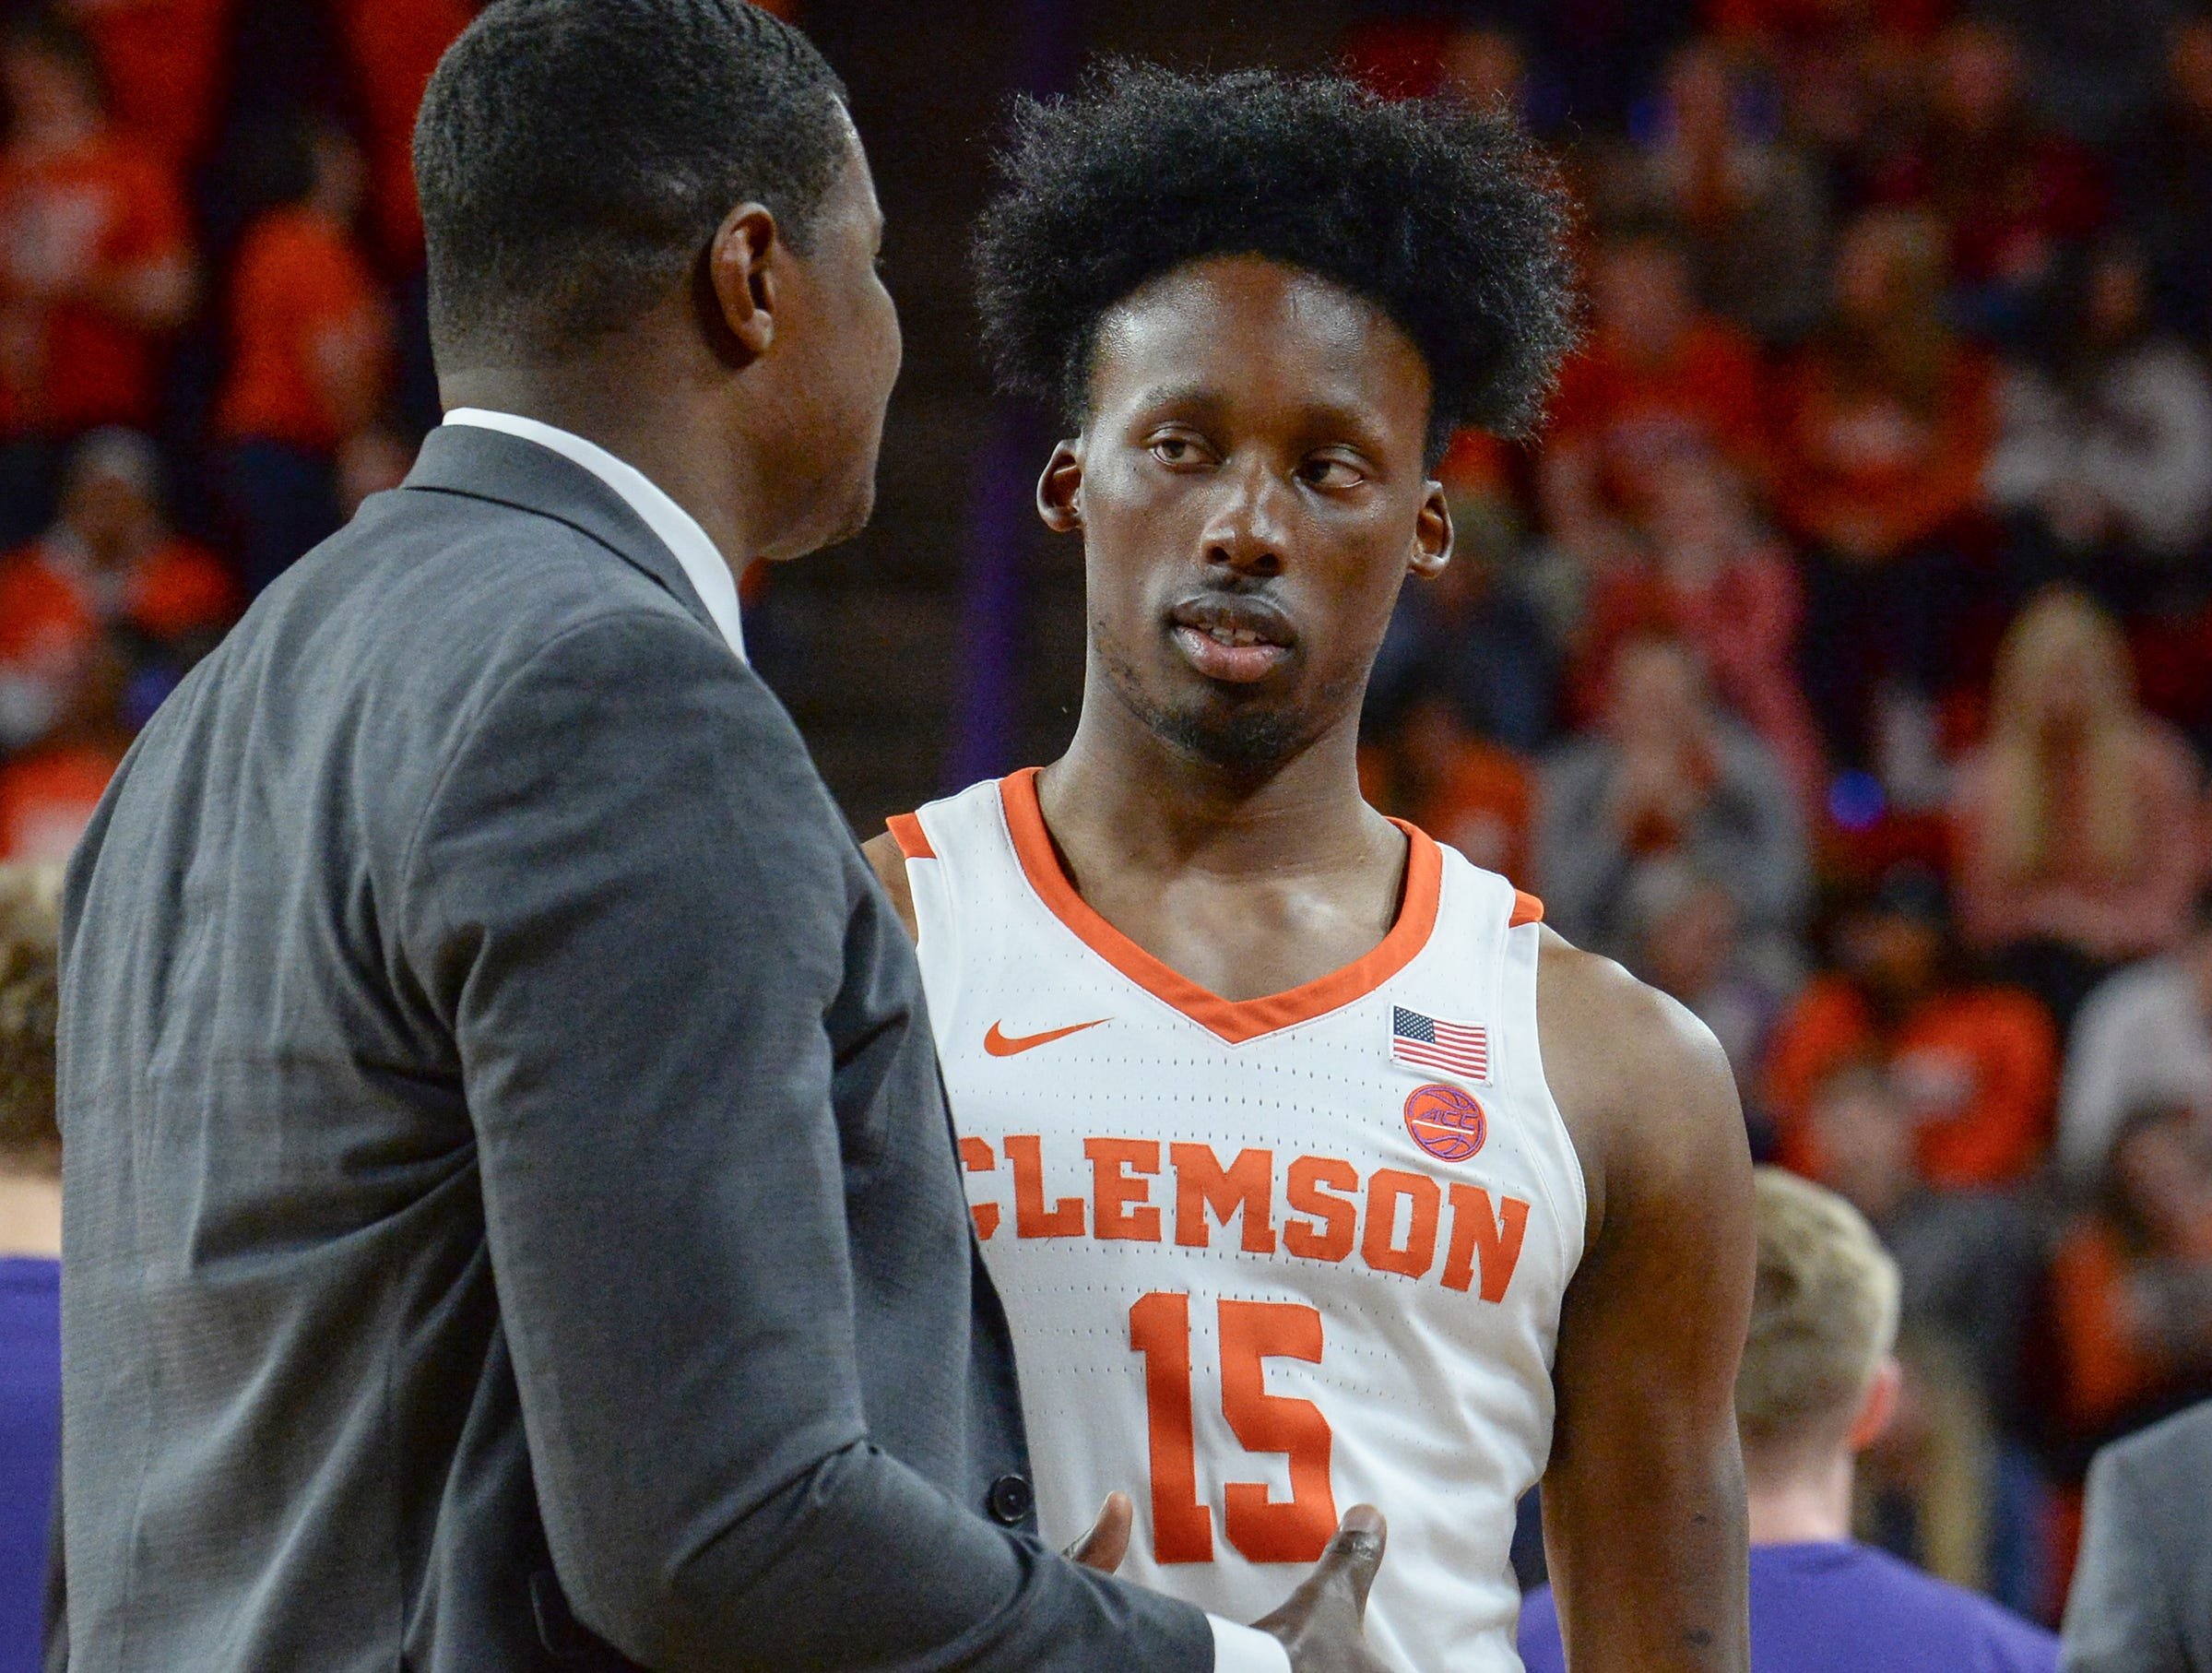 Clemson forward John Newman (15) during the second half at Littlejohn Coliseum in Clemson Tuesday, February 19, 2019.